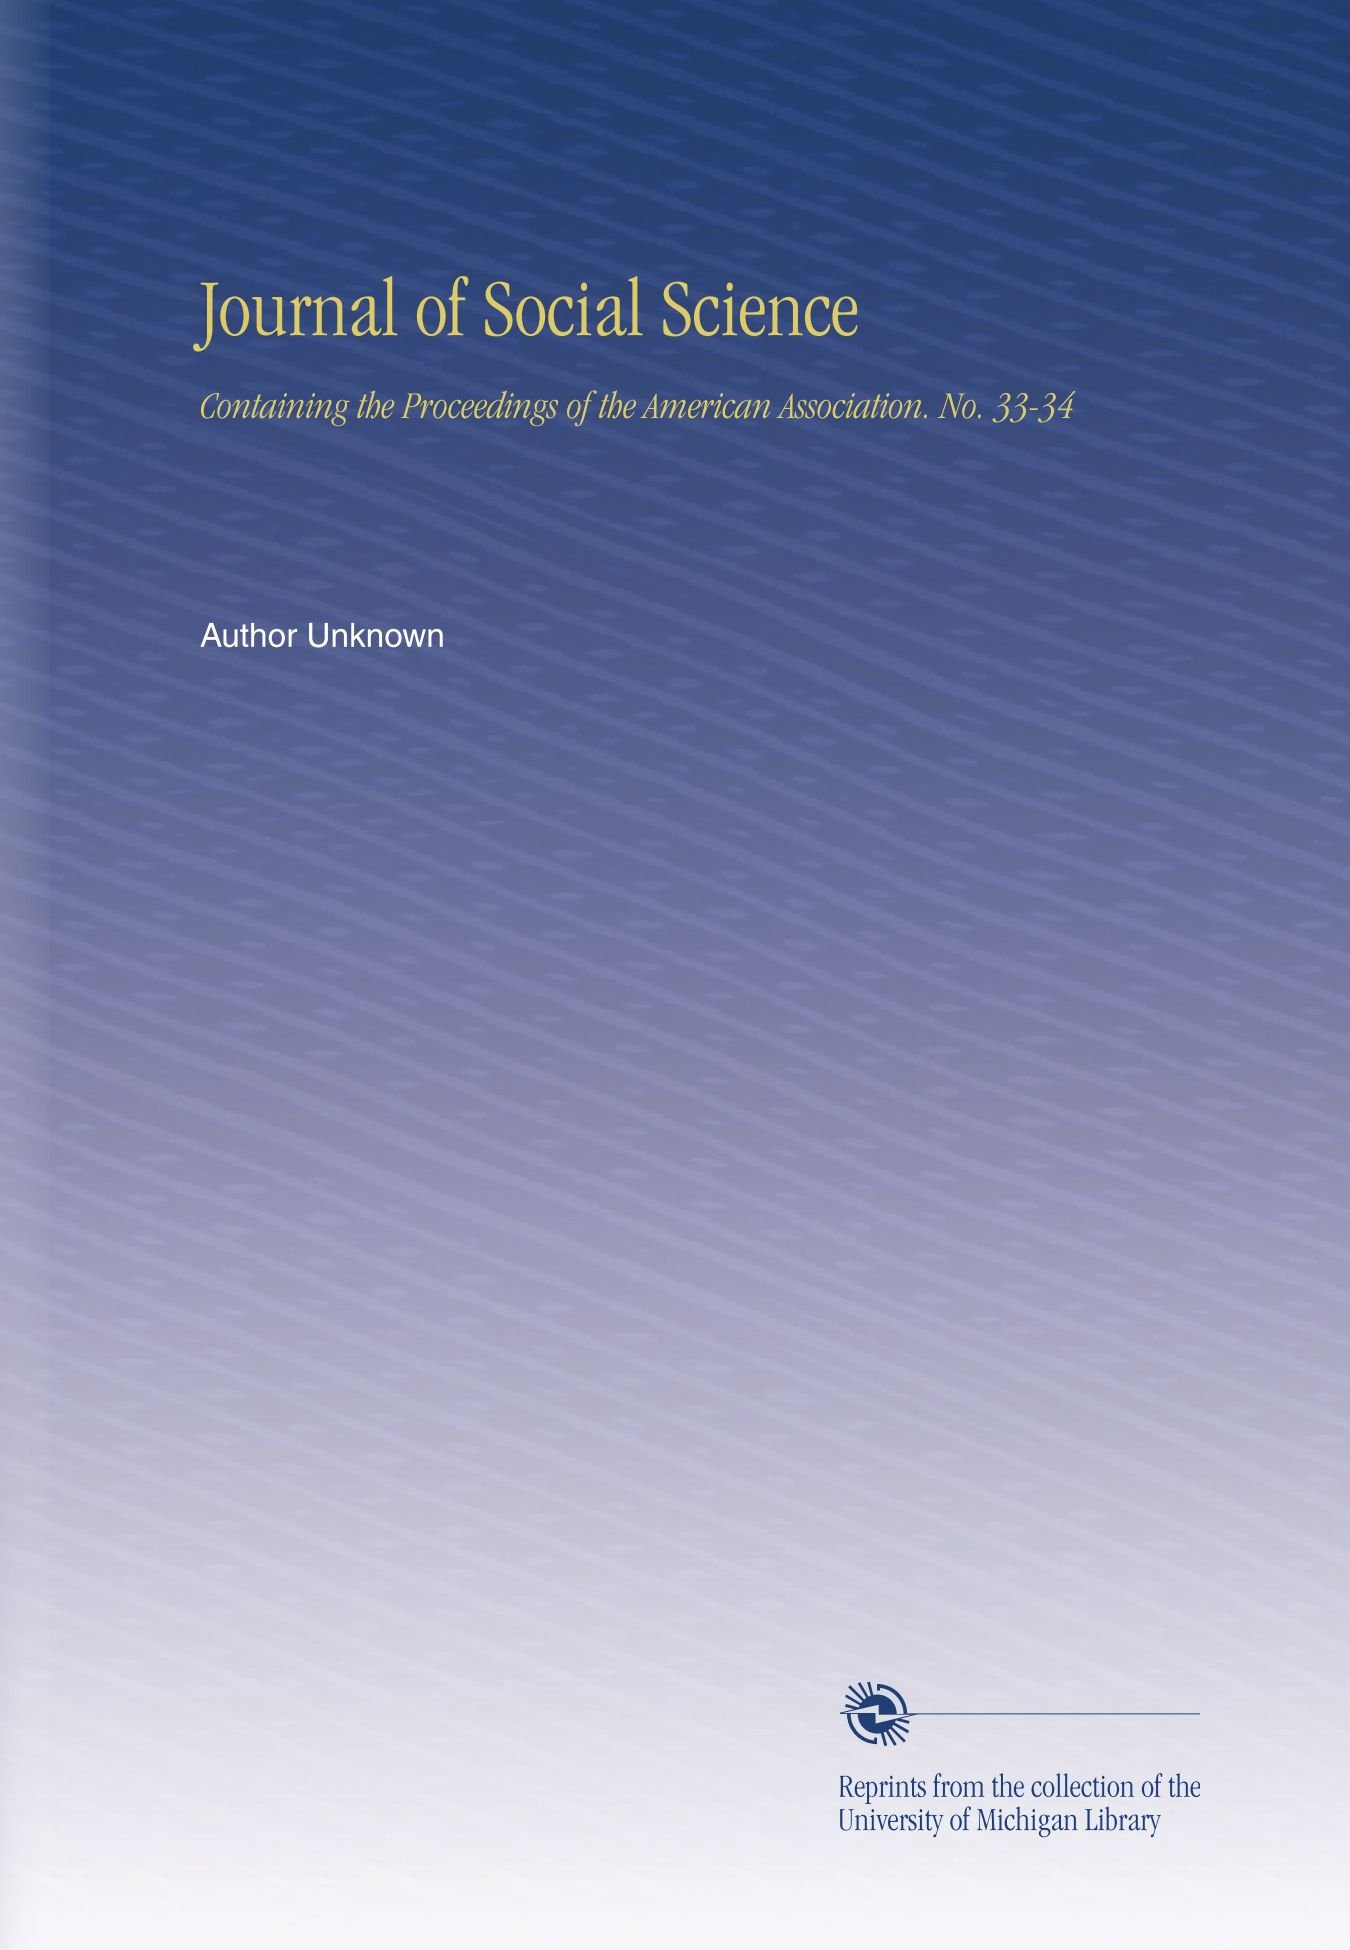 Download Journal of Social Science: Containing the Proceedings of the American Association. No. 33-34 PDF